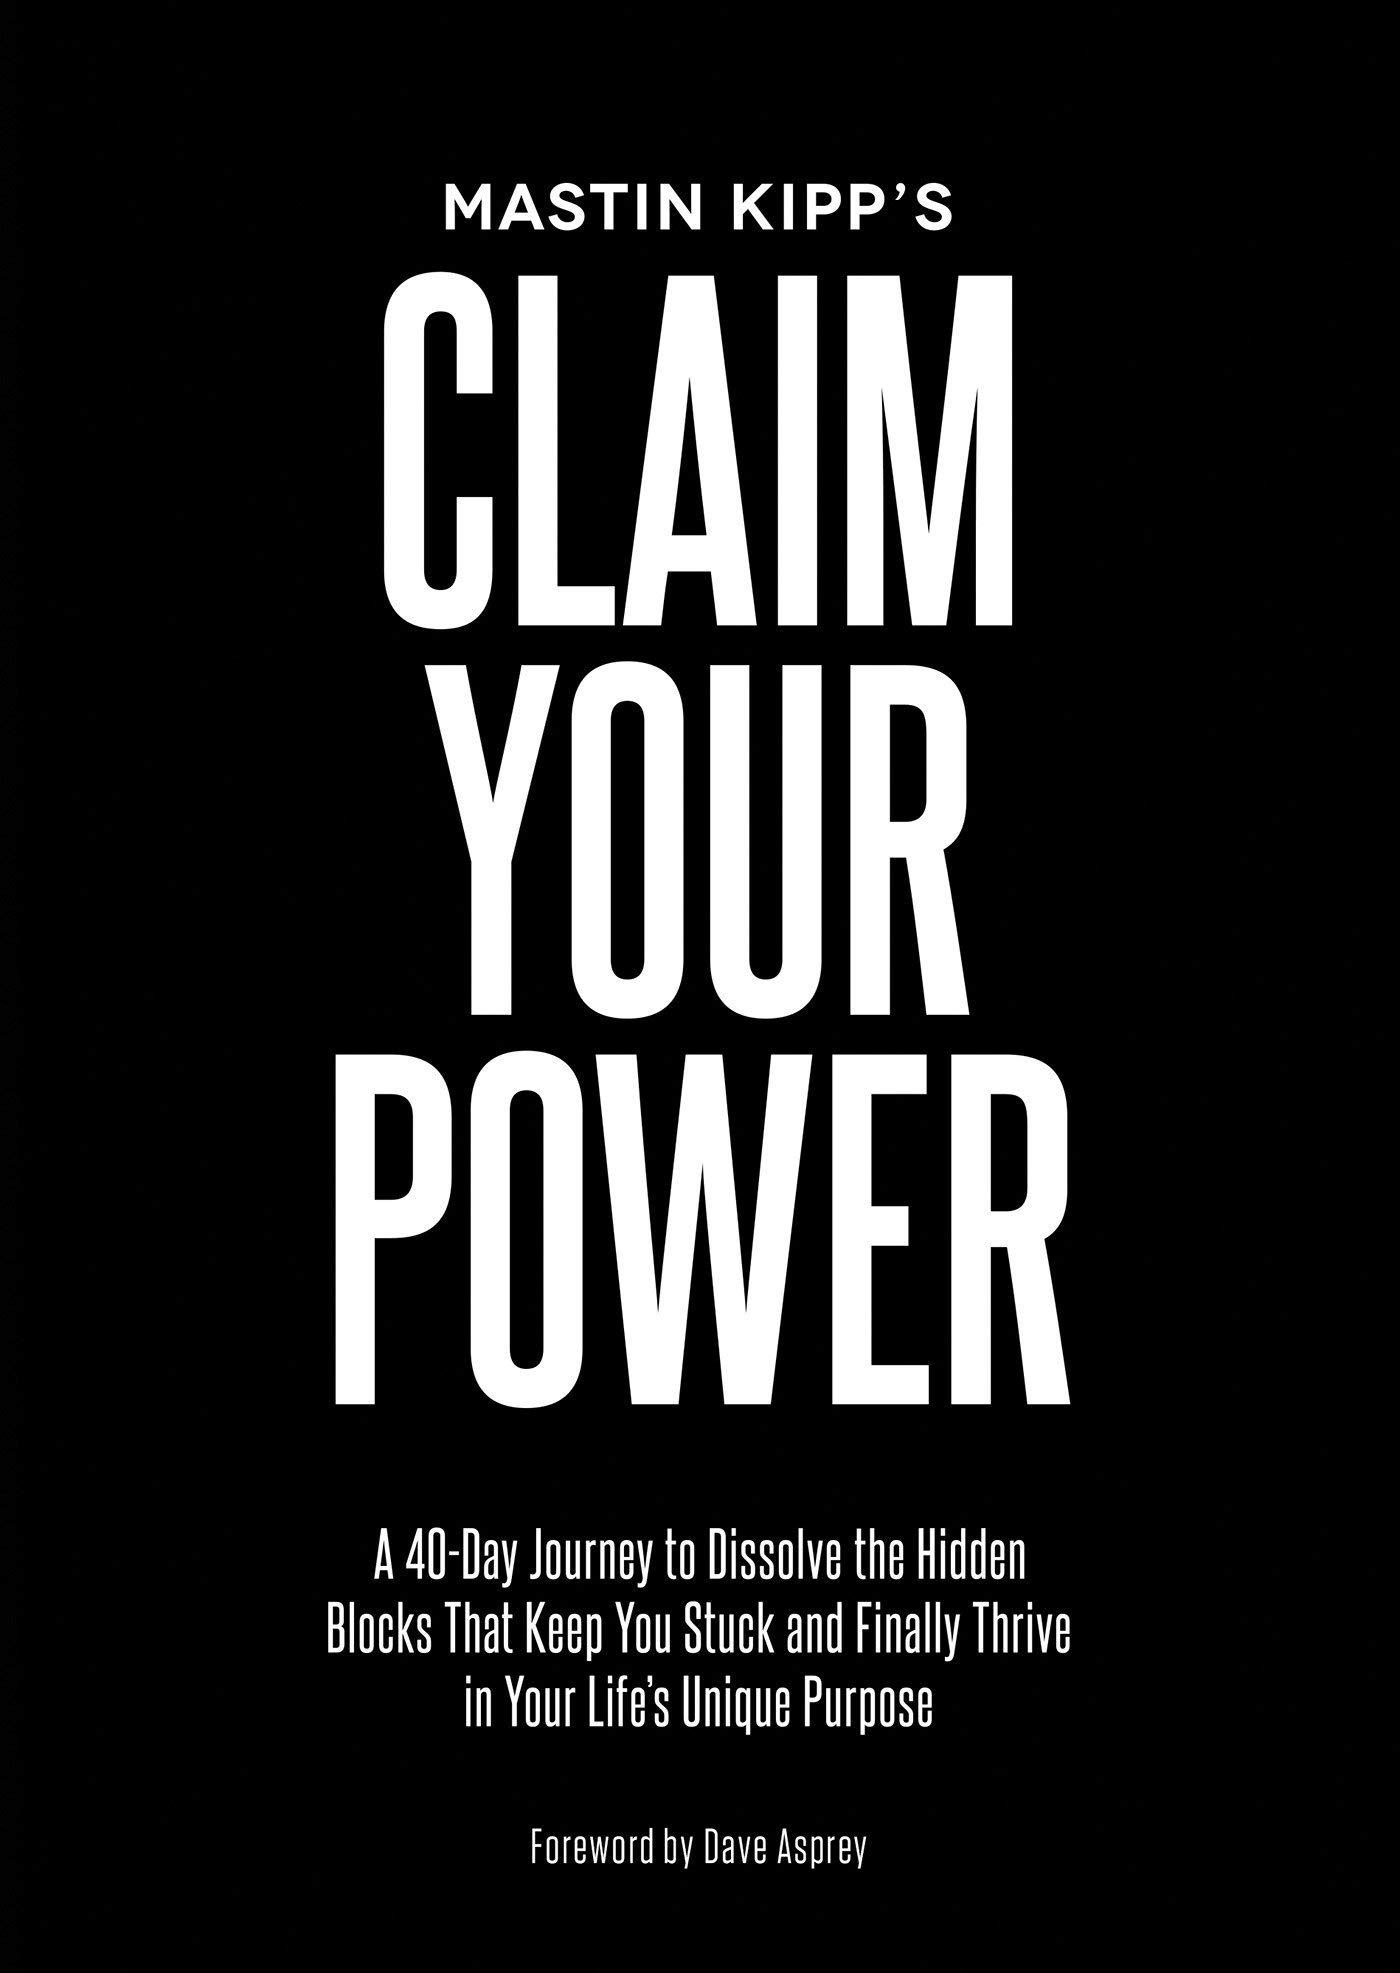 Claim Your Power: A 40-Day Journey to Dissolve the Hidden Blocks That Keep You Stuck and Finally Thrive in Your Life's Unique Purpose by Hay House Inc